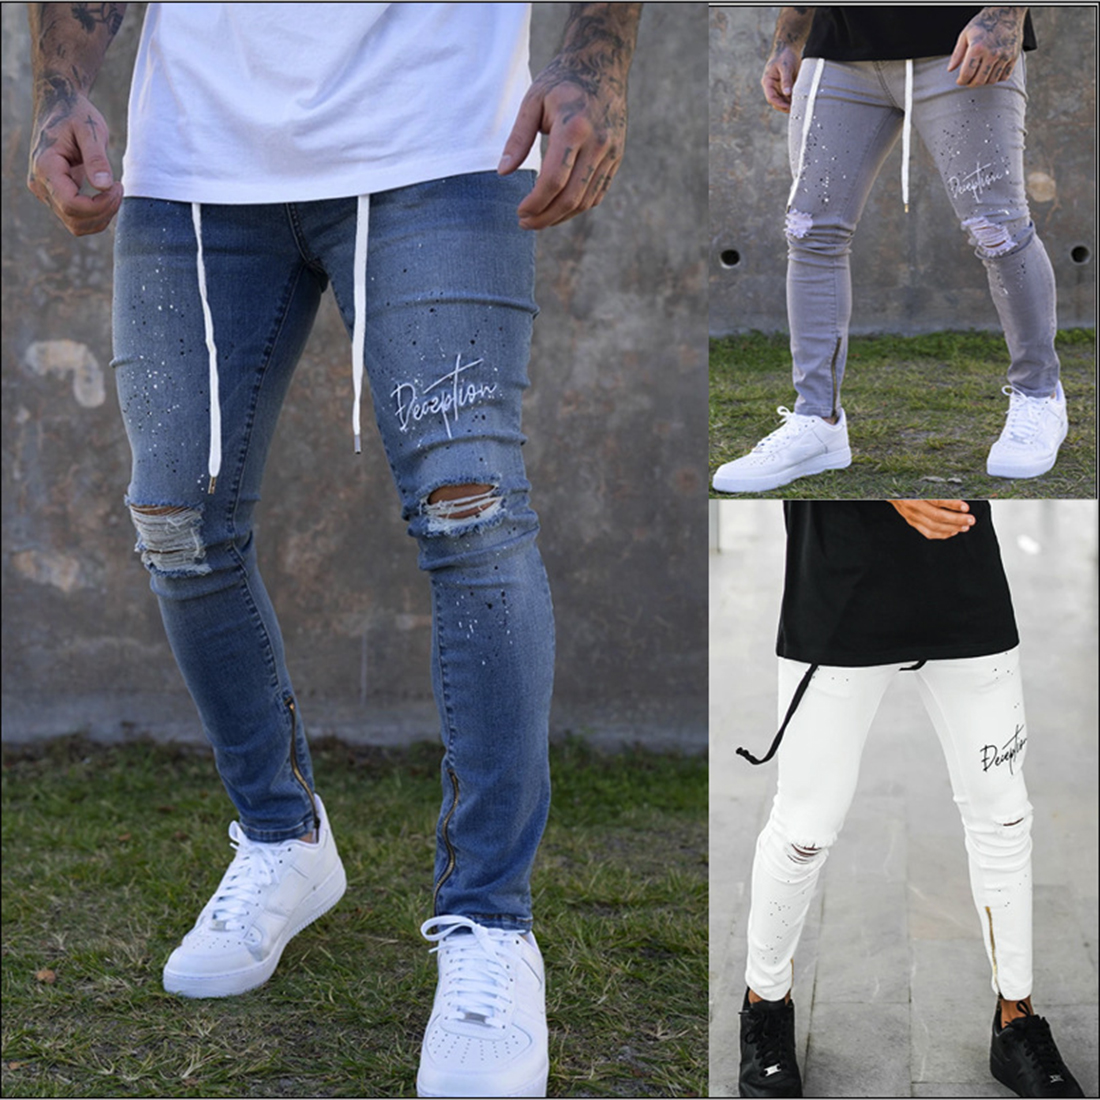 LASPERAL Fashion Streetwear Men's Slim Fit Denim Pants Ripped Pants Men's Painted Jeans Skinny Jeans Drawstring Jeans